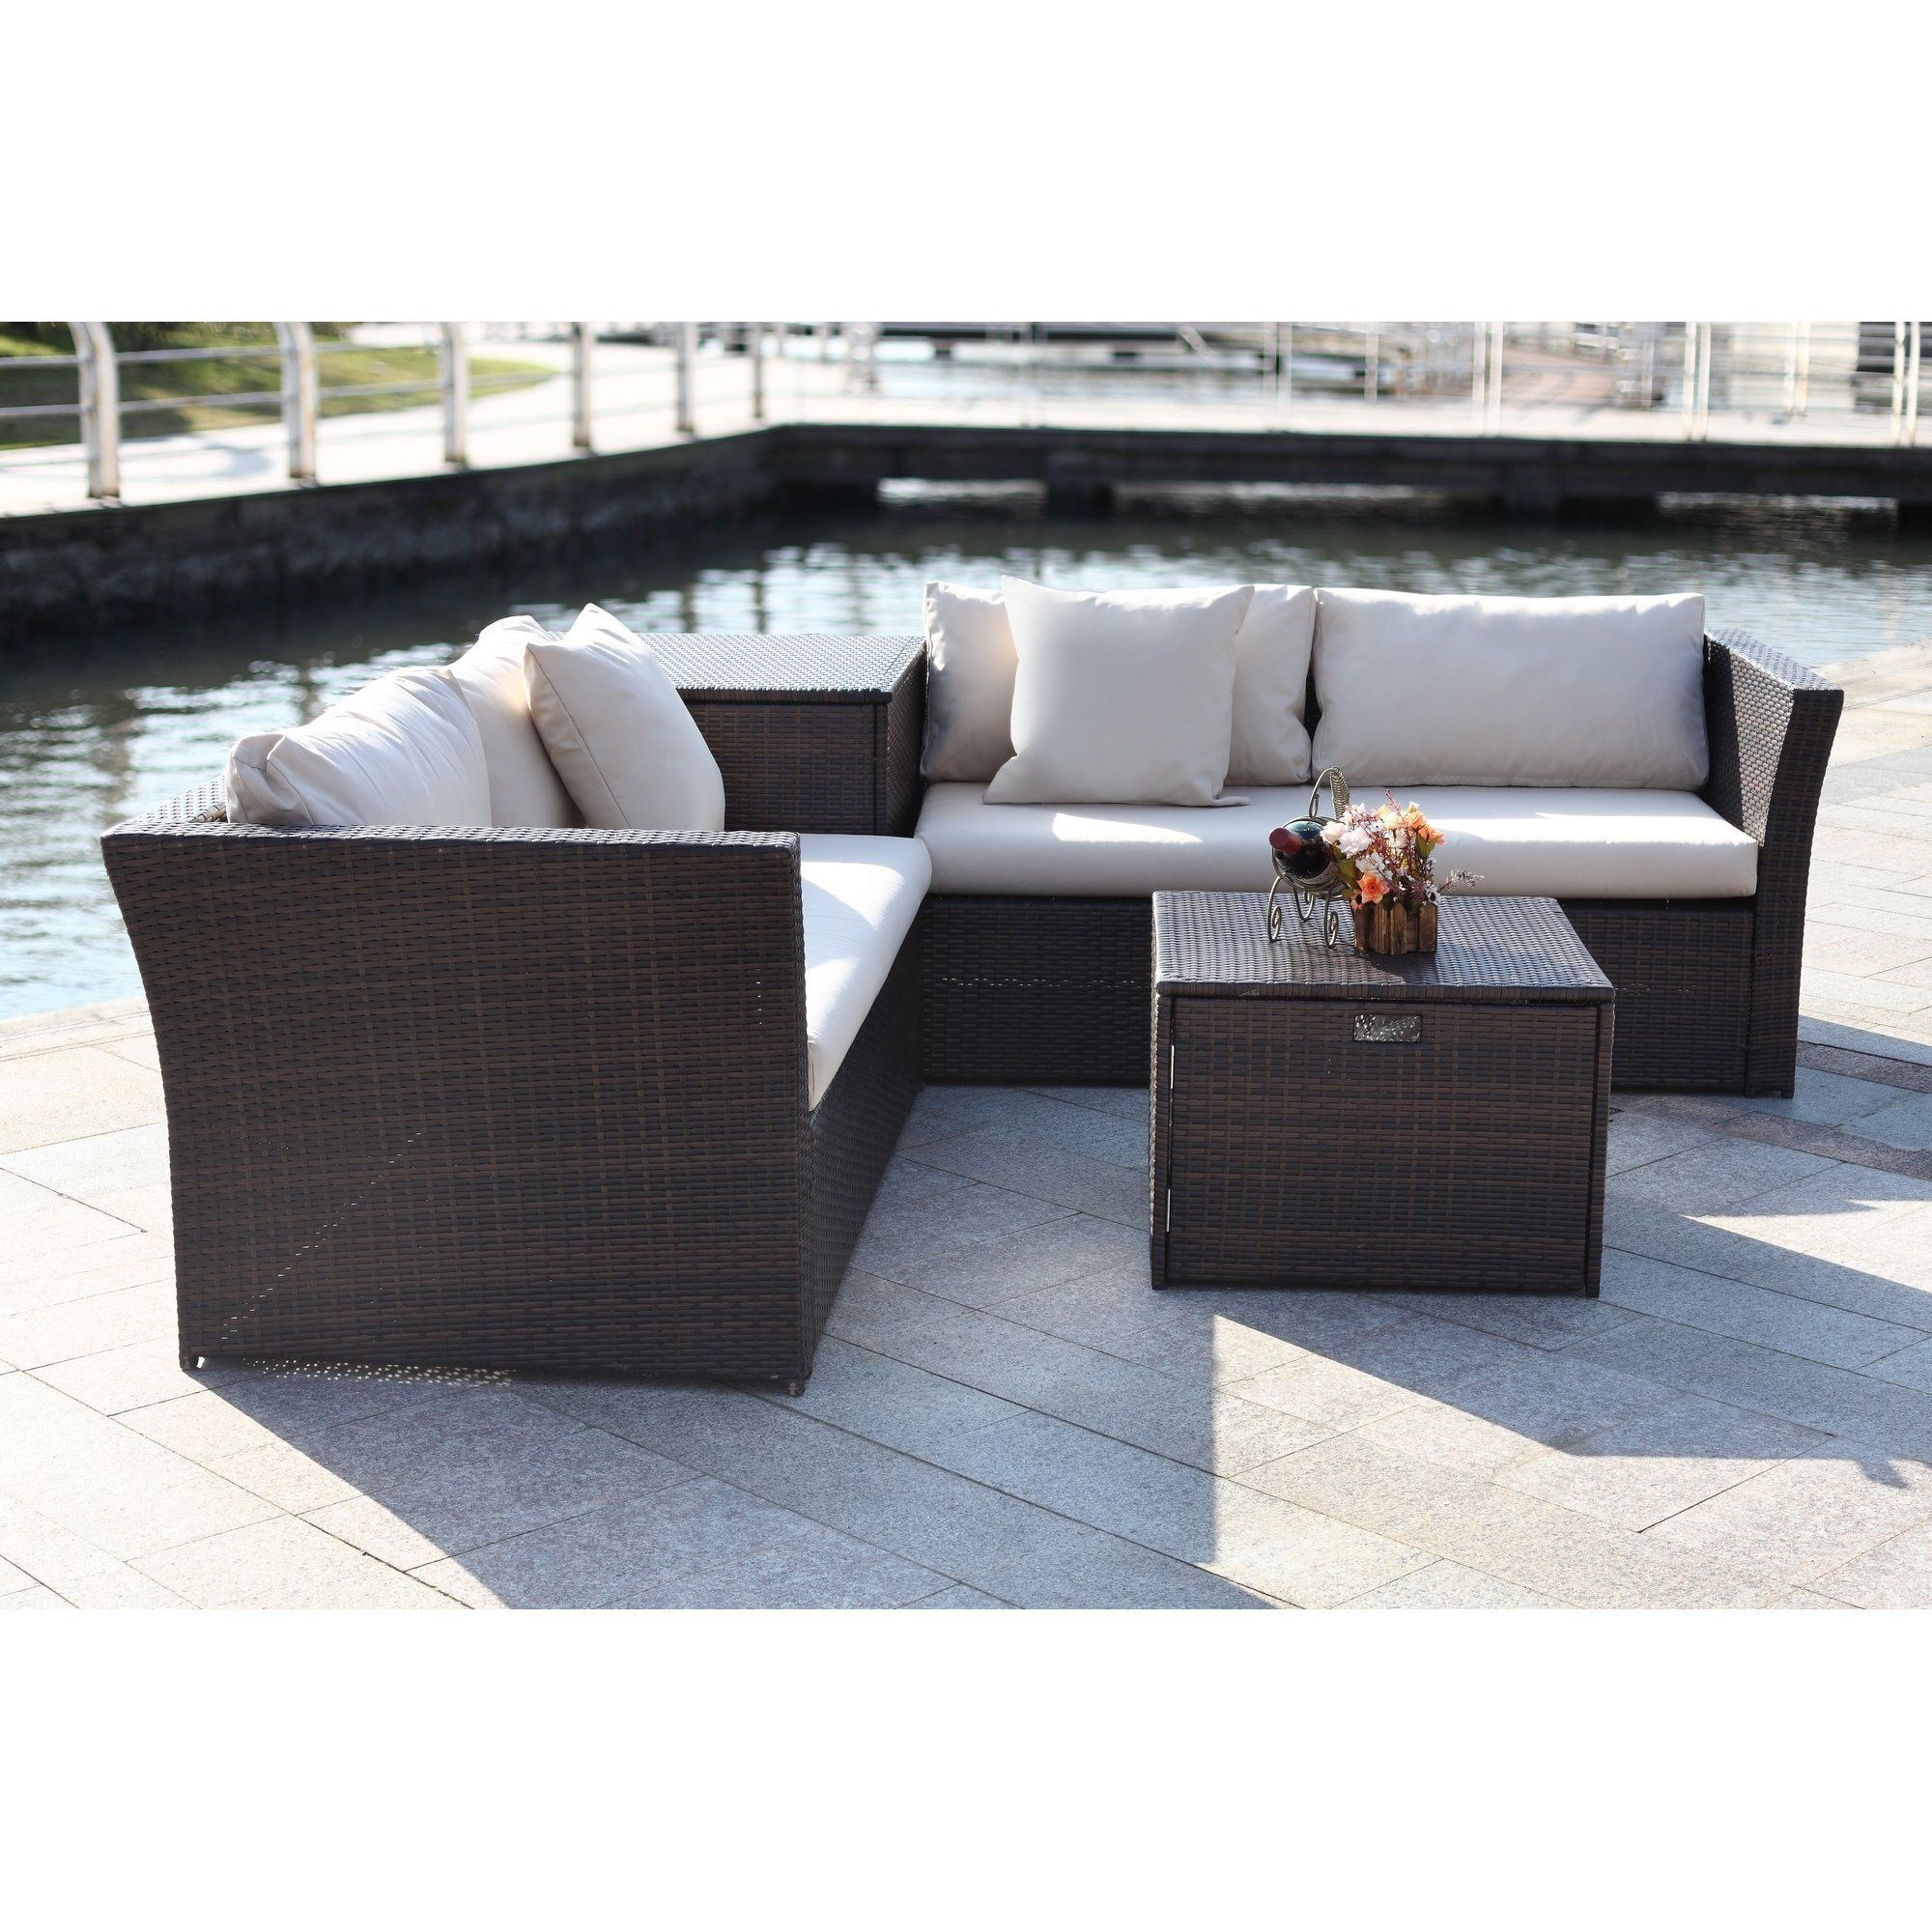 Baptist 6 Piece Rattan Sofa Set With Cushions Marguerite 4 Piece Rattan Sectional Set With Cushions Rattan And